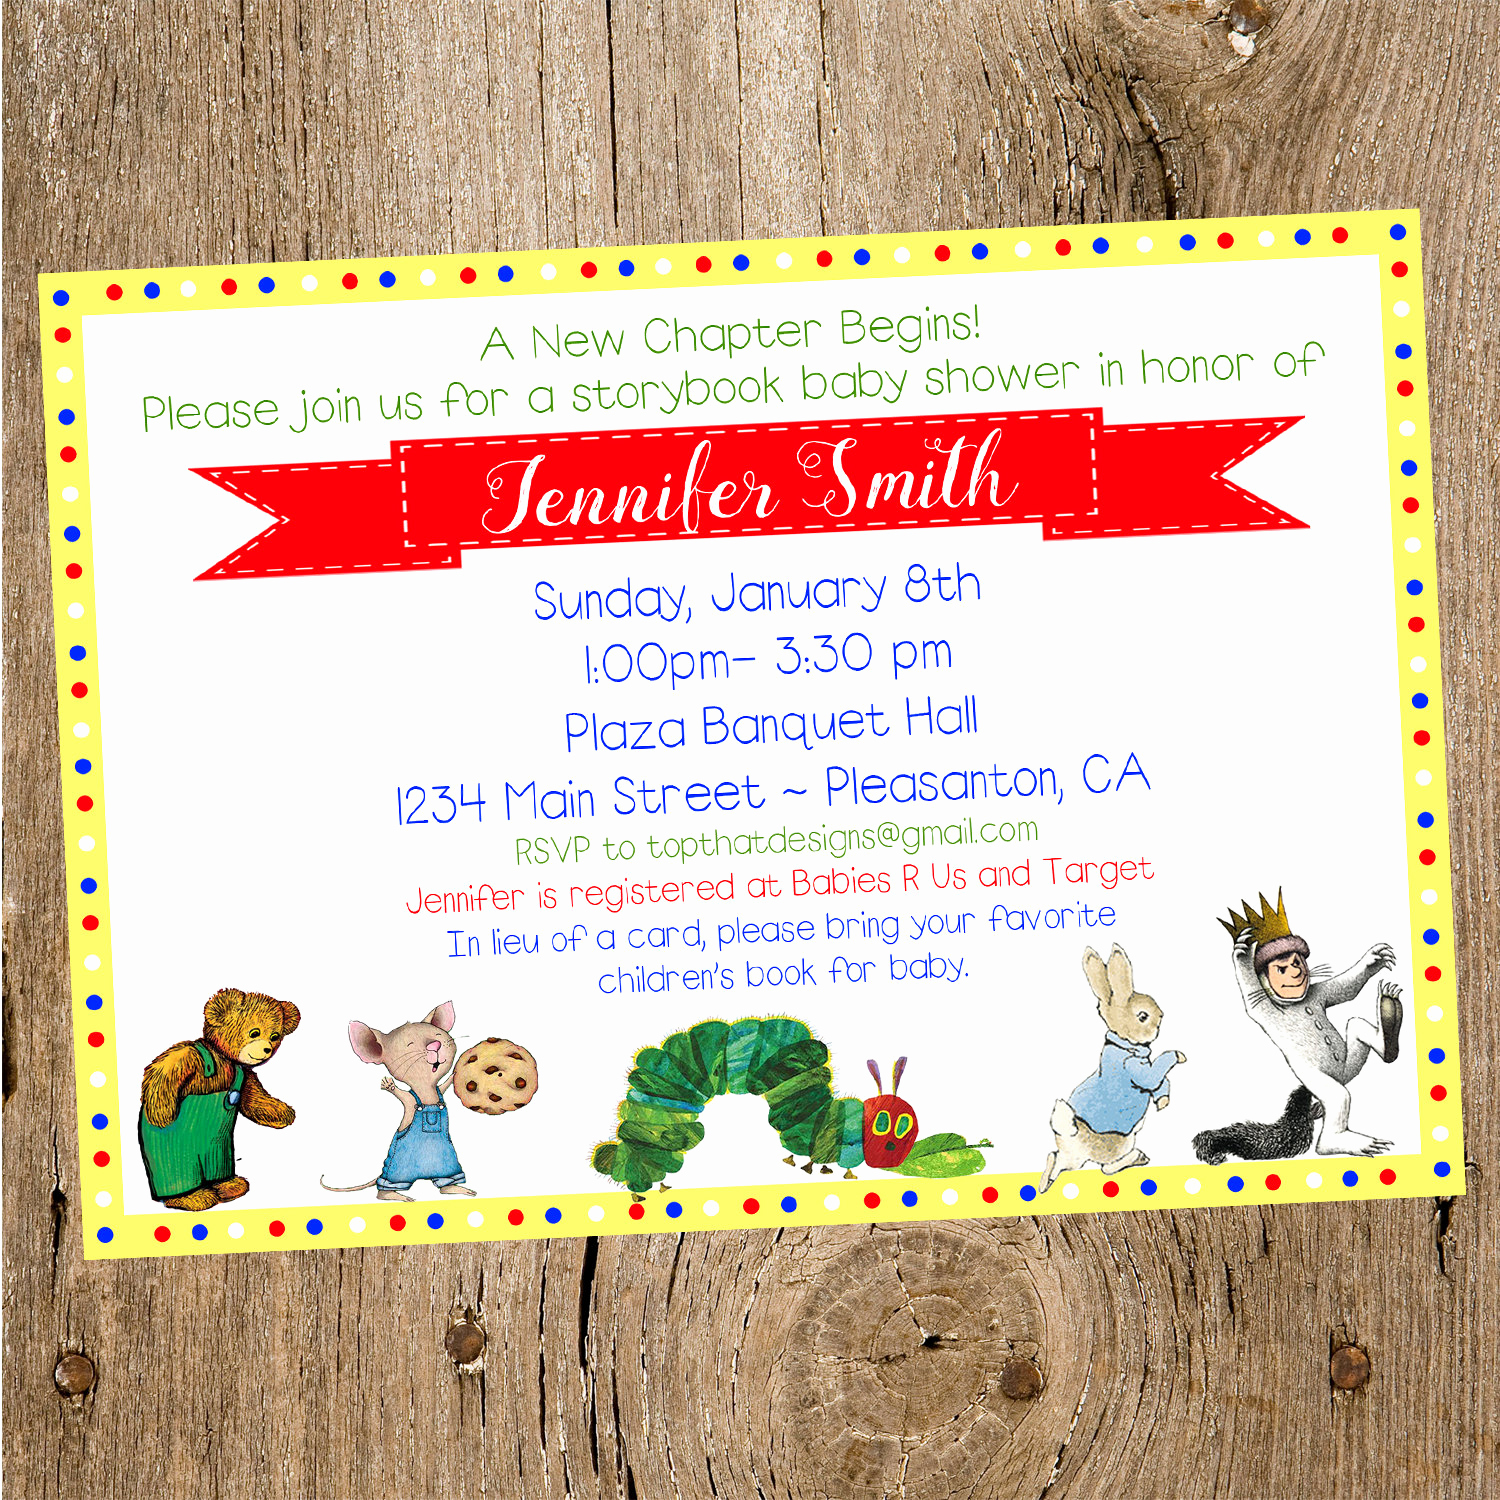 Book themed Baby Shower Invitation Luxury Children S Book themed Baby Shower Invitation by Jenleonardini